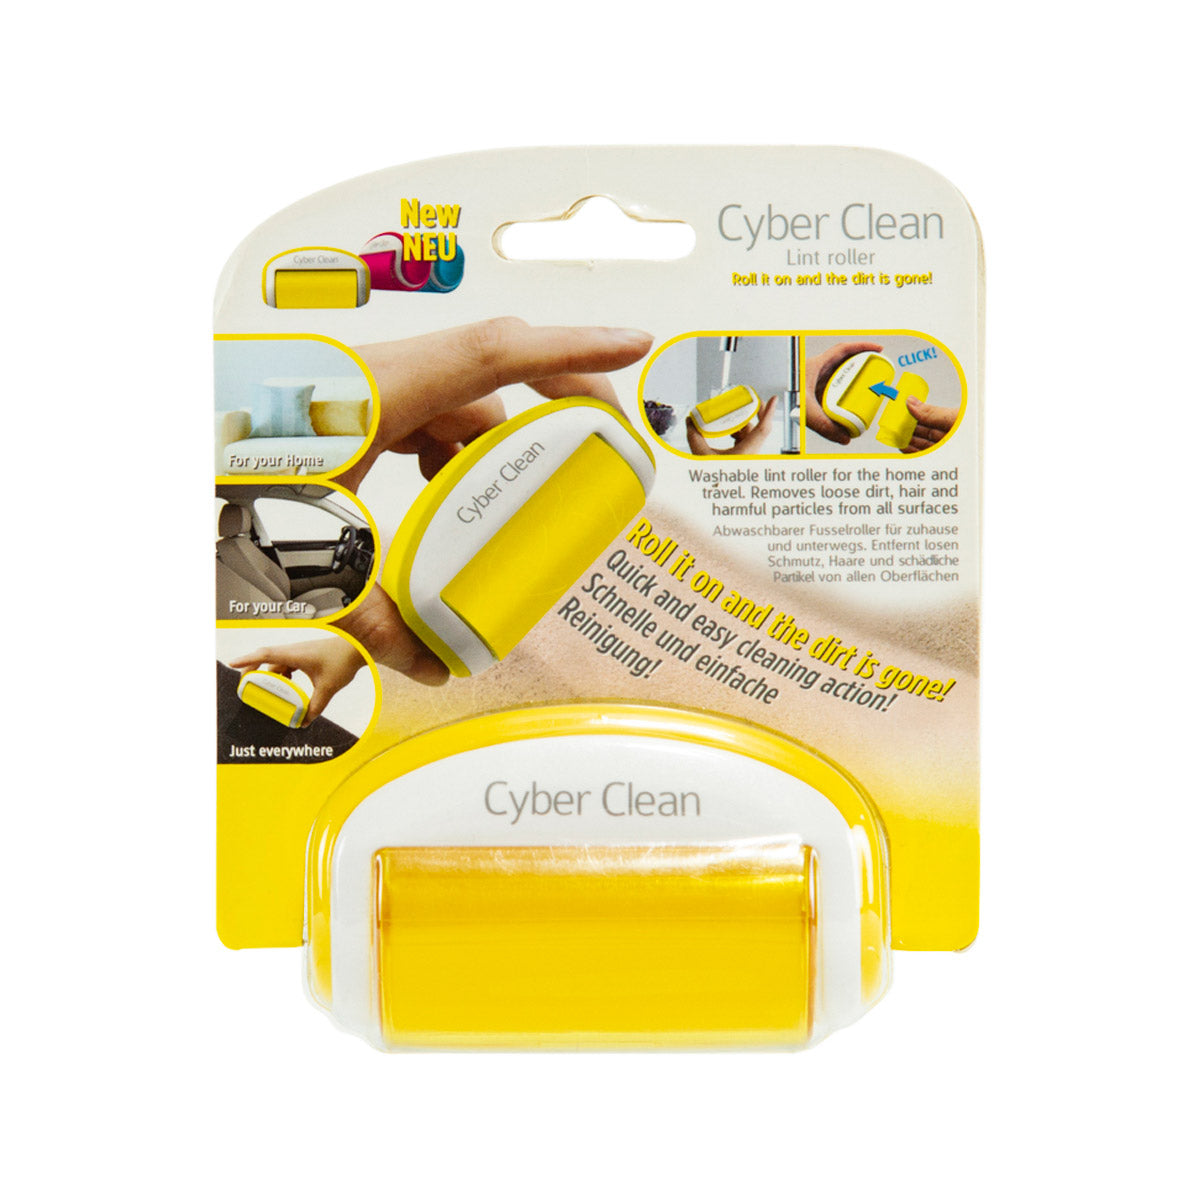 CYBER CLEAN Cyber Clean Rollcare On The Go